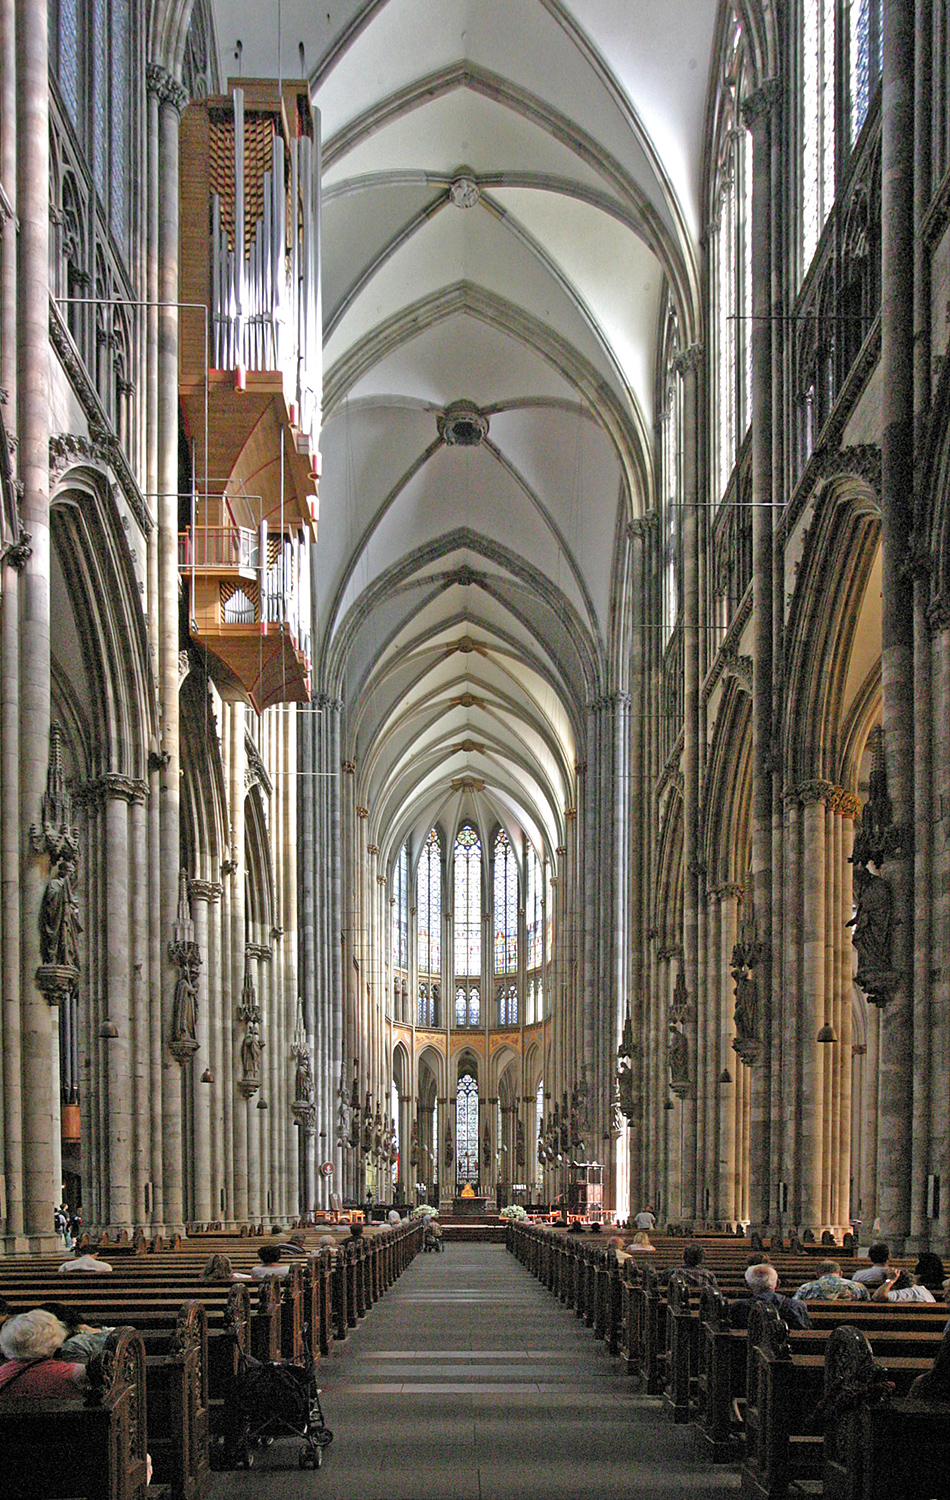 cologne-cathedral-european-tours-good-shepherd-travel.jpg